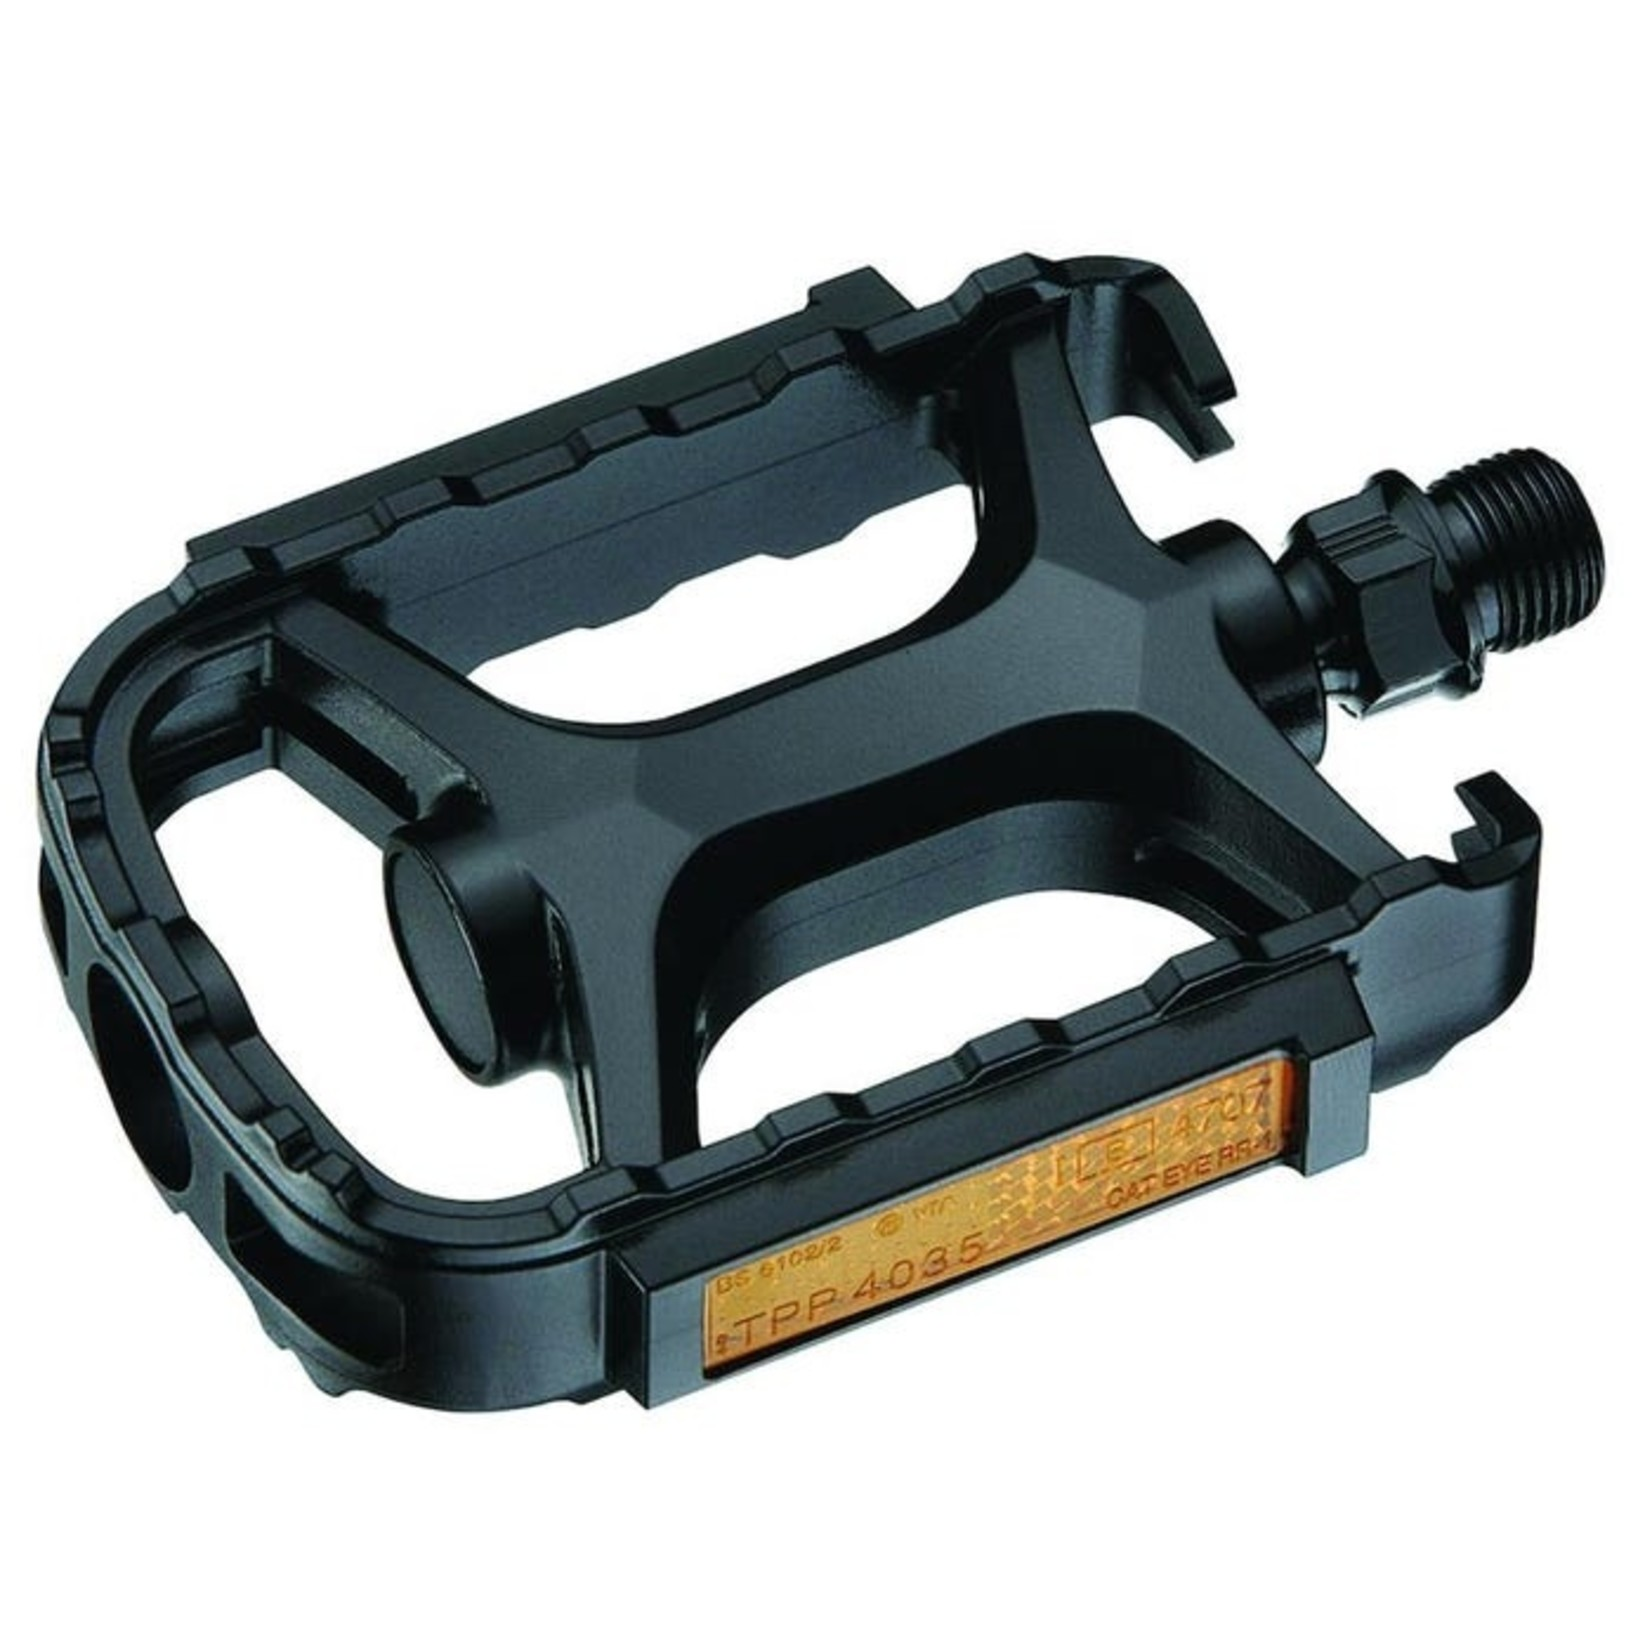 49N TREKKING PEDALS RESIN/ALY